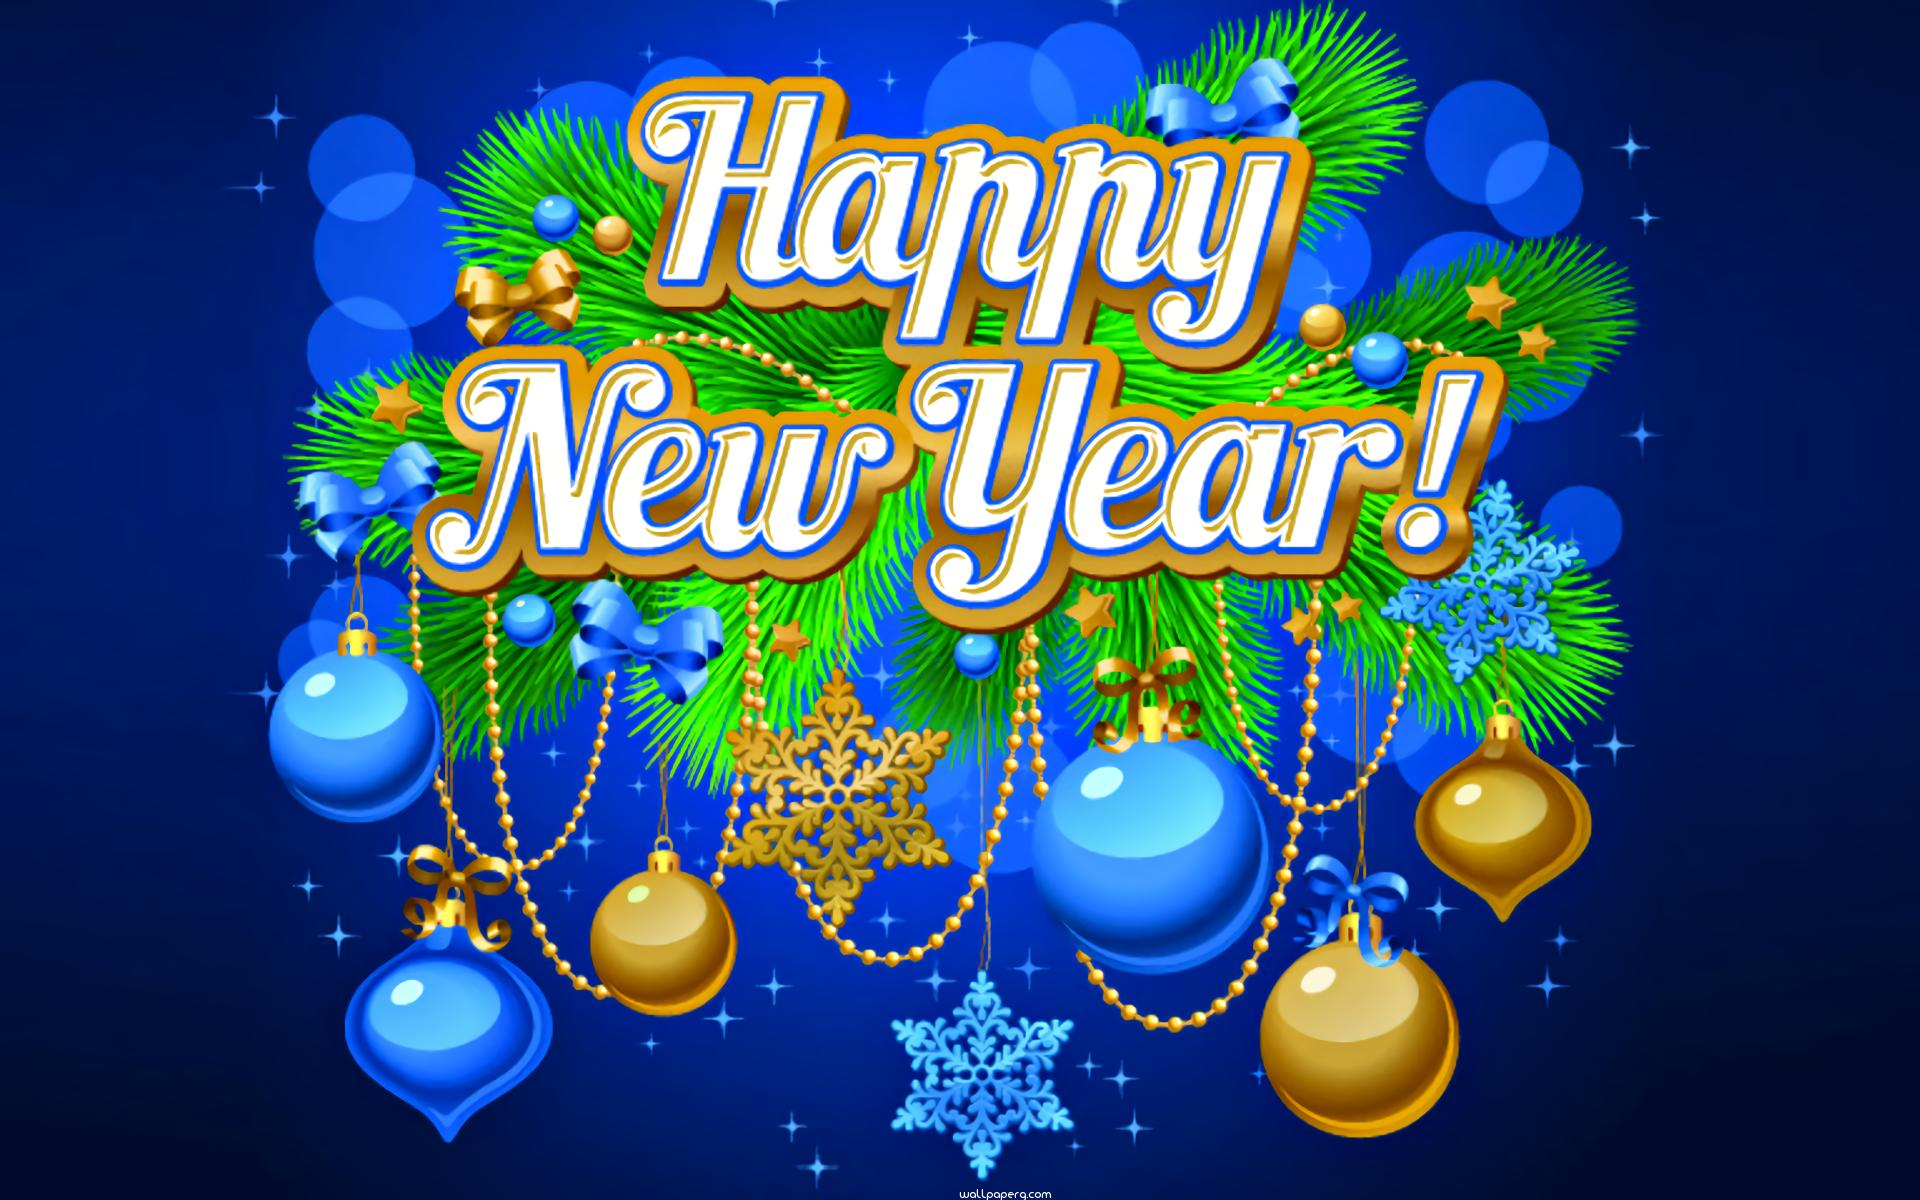 Download New Year Hd Wallpaper For Mobile Cell Phone